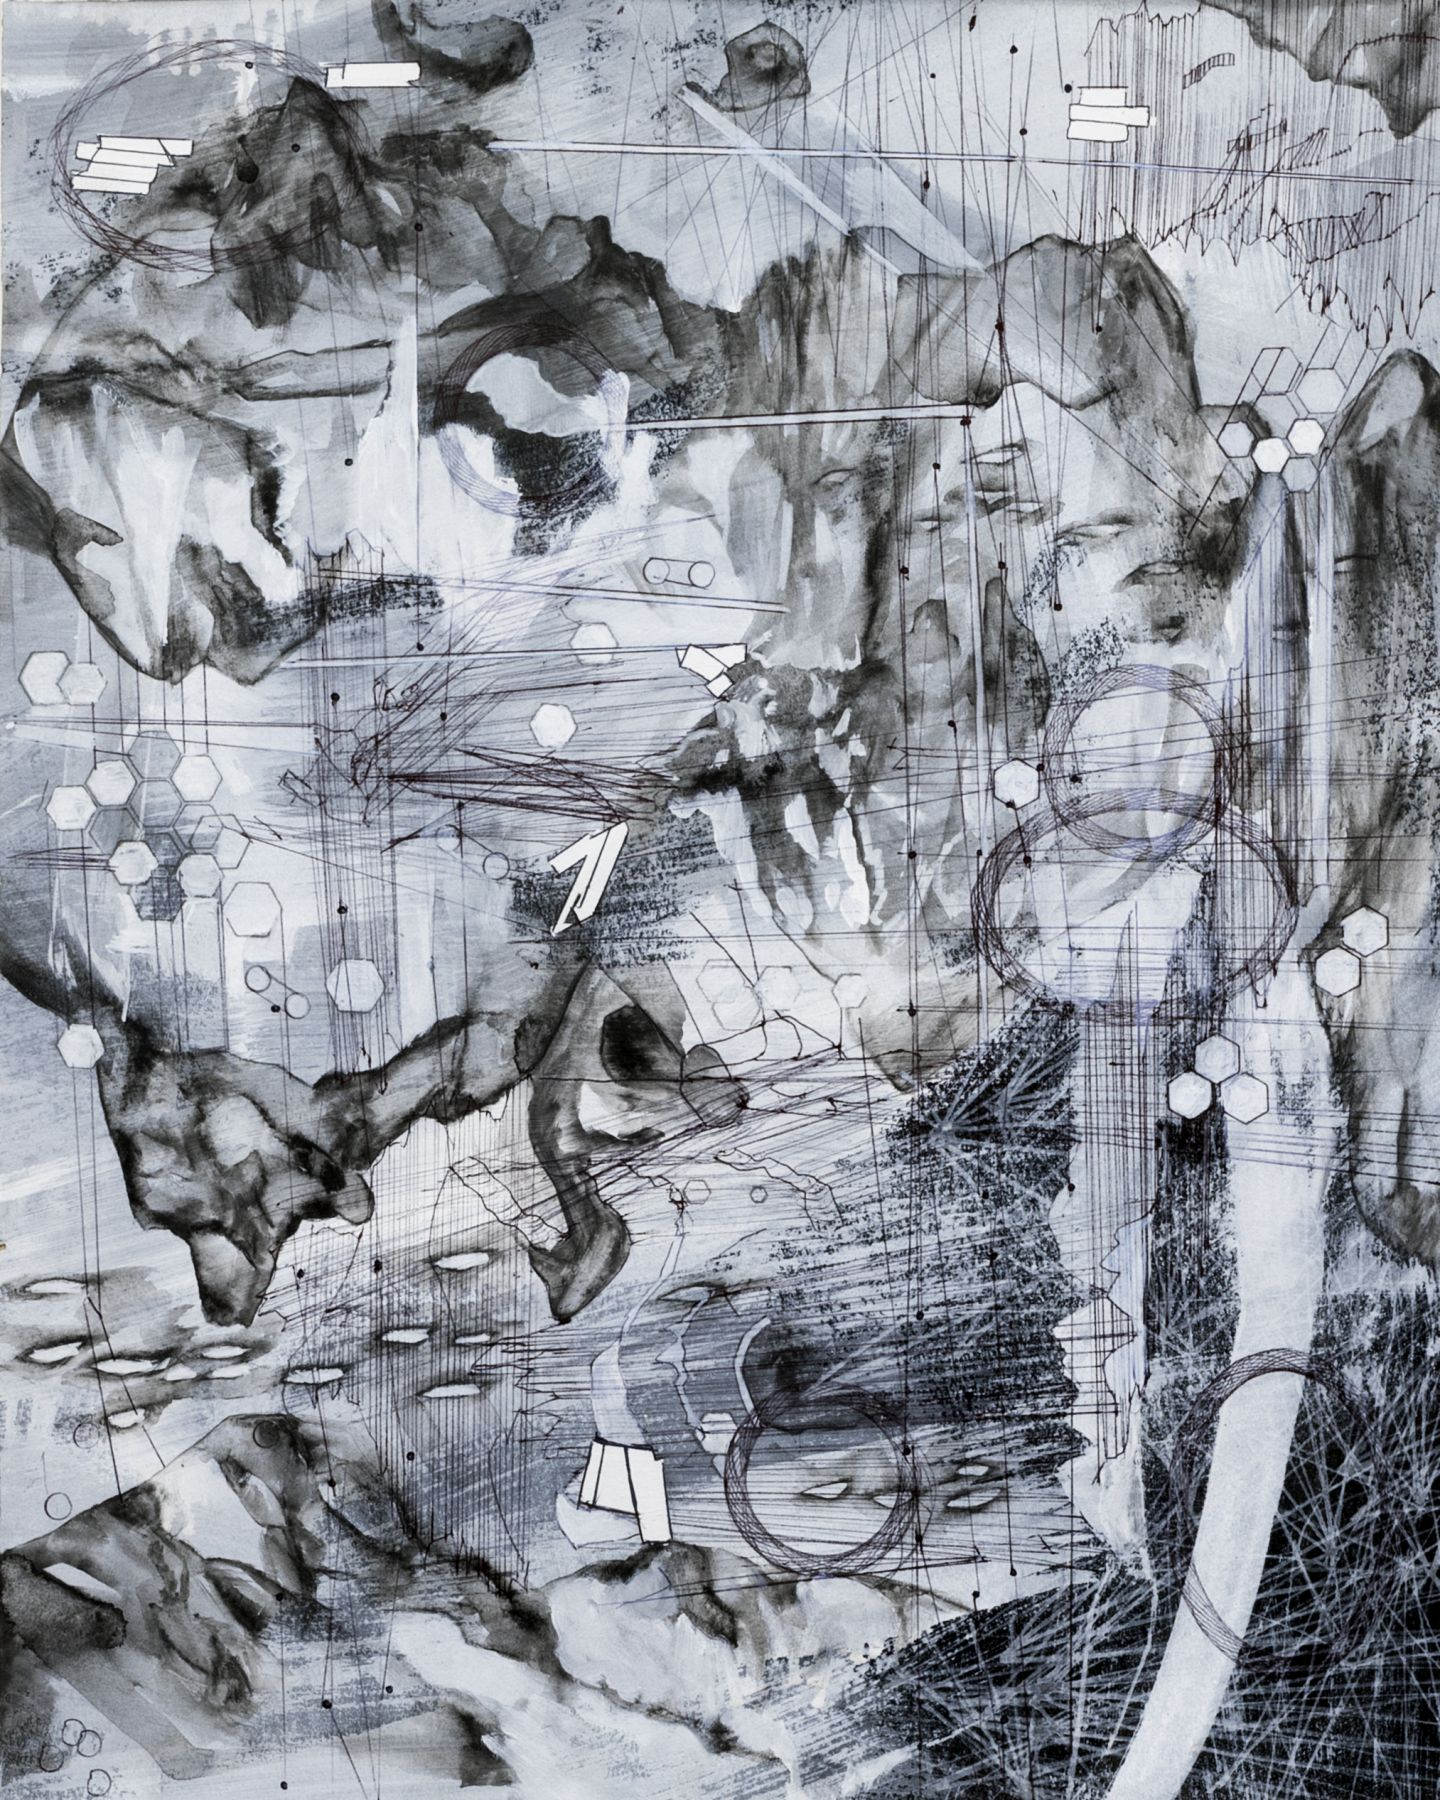 AMY SCHISSEL   POST DIGITAL LANDSCAPES SERIES #7  ACRYLIC, GRAPHITE, CHARCOAL AND INK ON PAPER   22,5 X 18 INCHES   2017